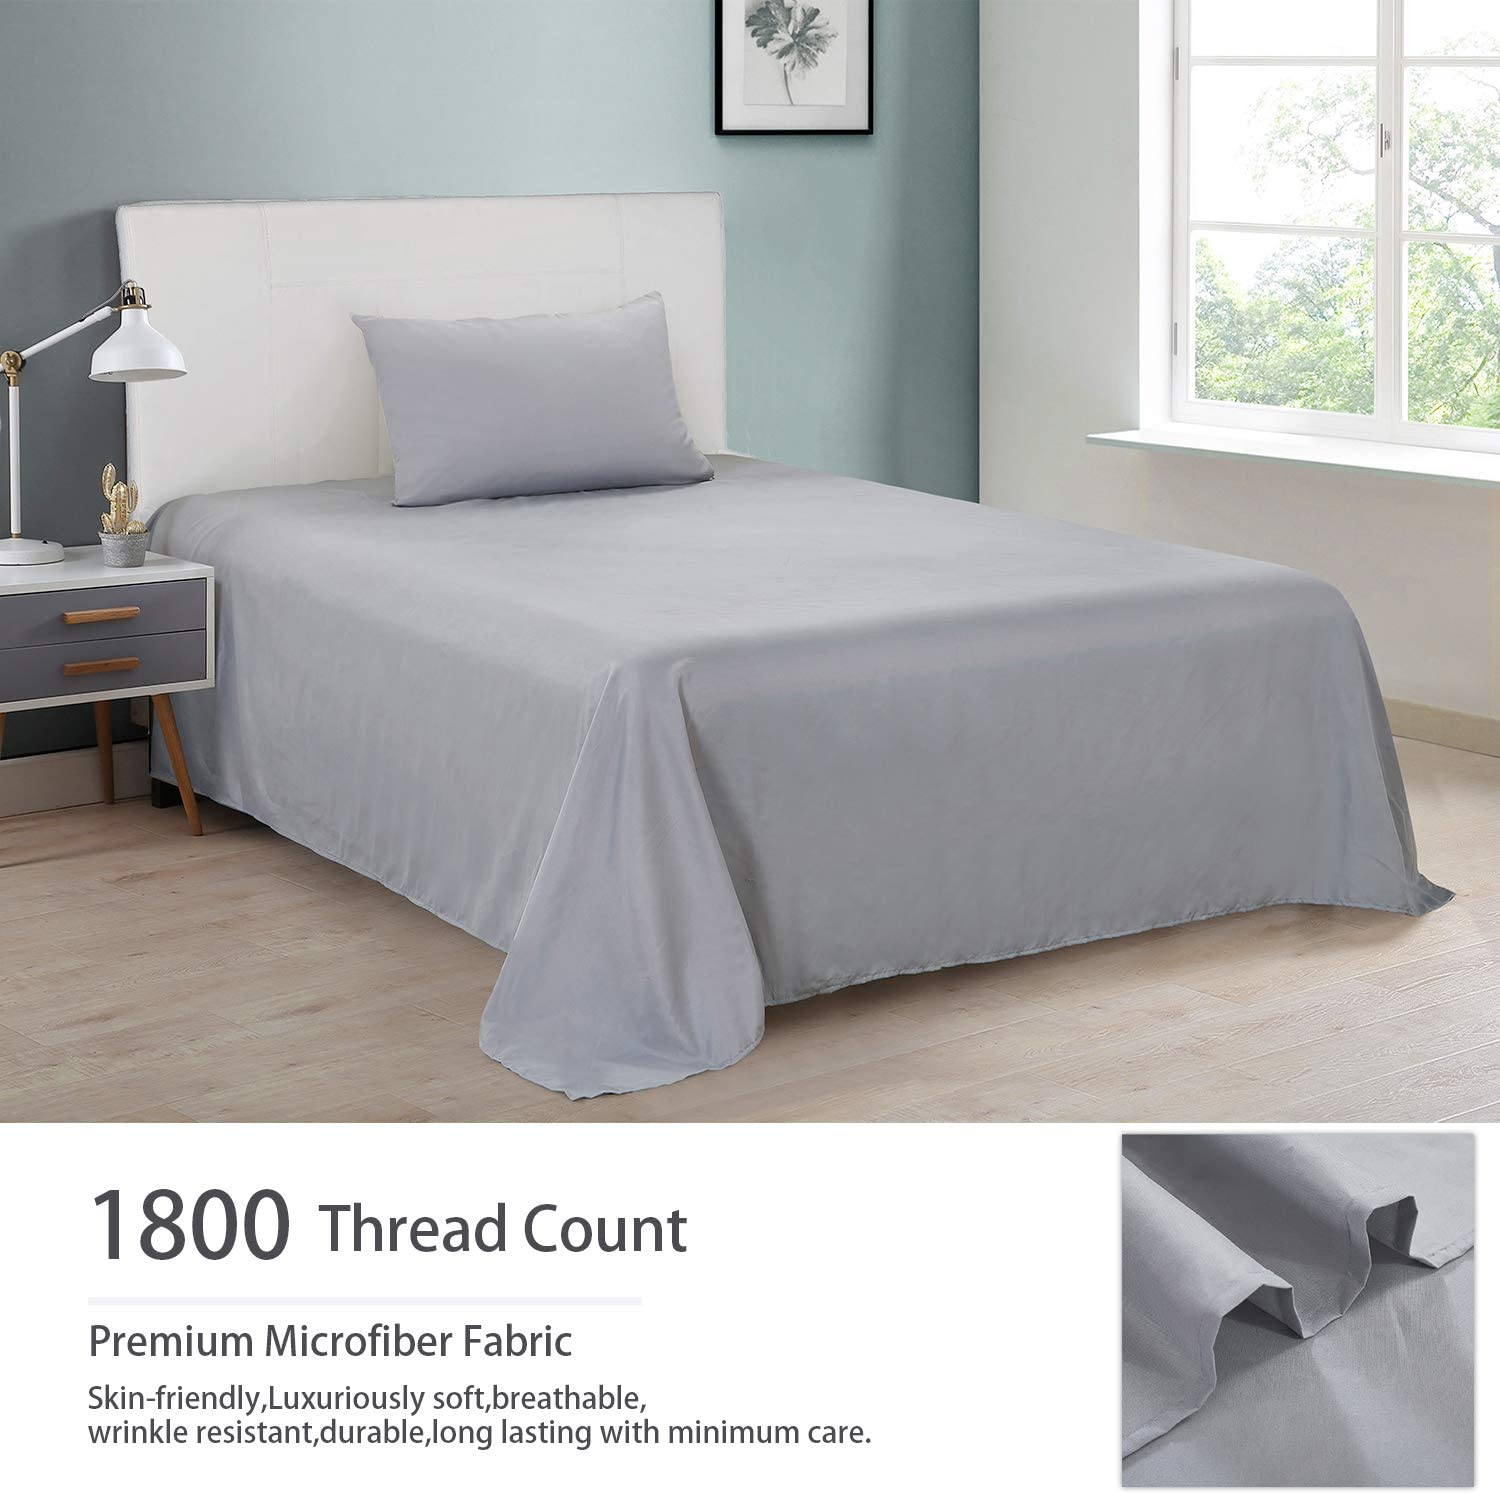 Stain Resistant Breathable Cooling Sheets,Soft Brushed Microfiber Fabric Mattress Sheets SVOHZAV Bed Sheet Set Hypoallergenic,Easy Fit 3 Piece,16-Inch Deep Pocket,Wrinkle Fade Gray, Twin